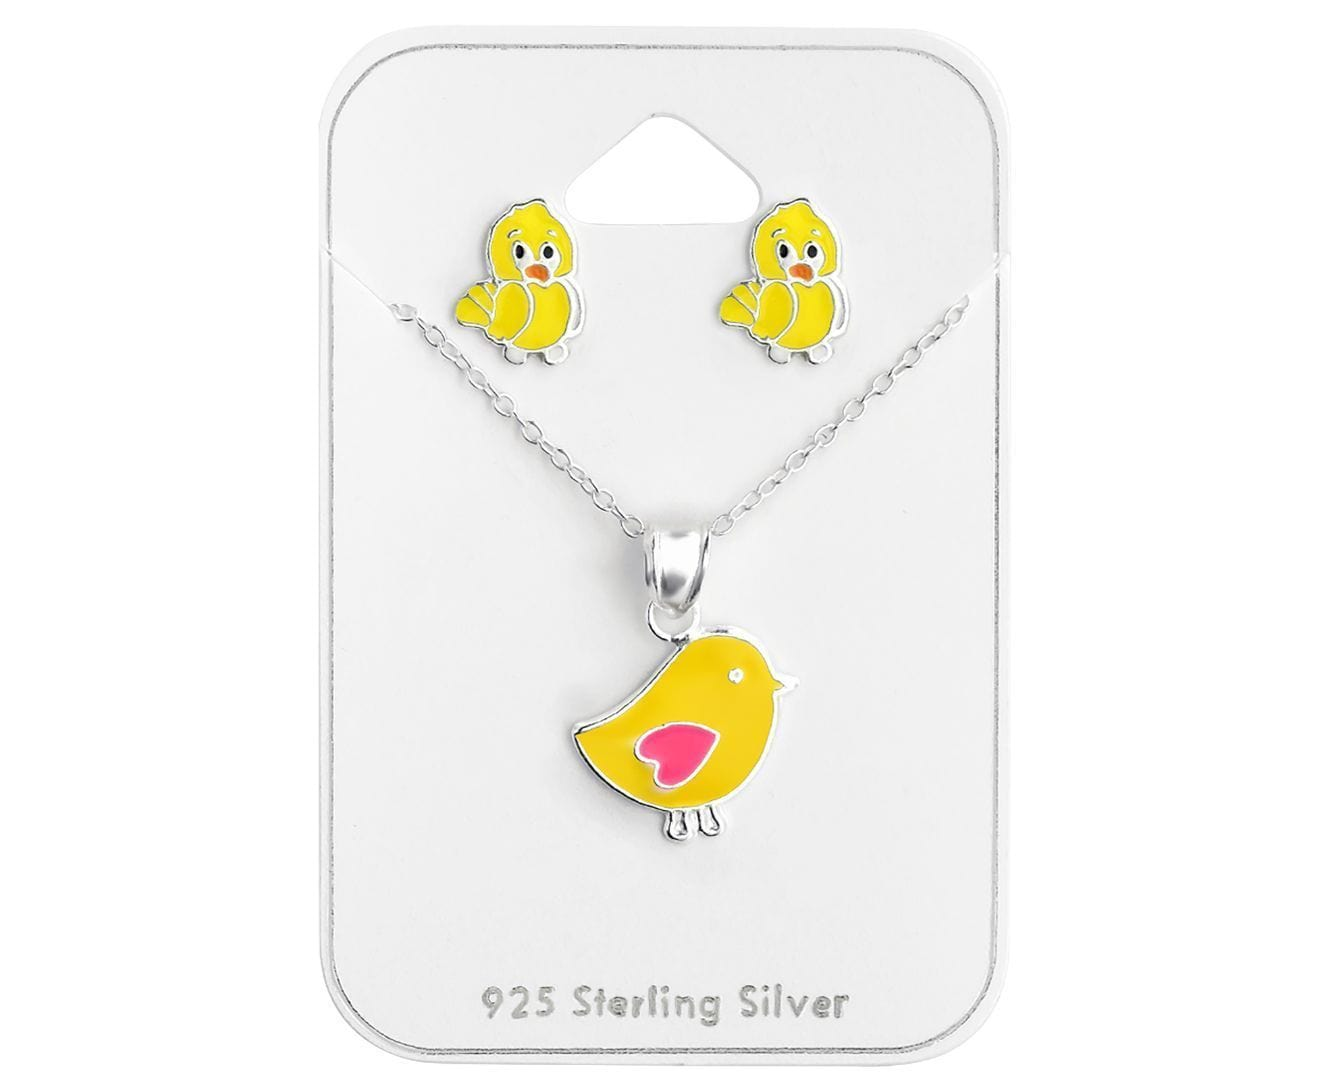 Silver Chicken Pendant Necklace Set for Kids